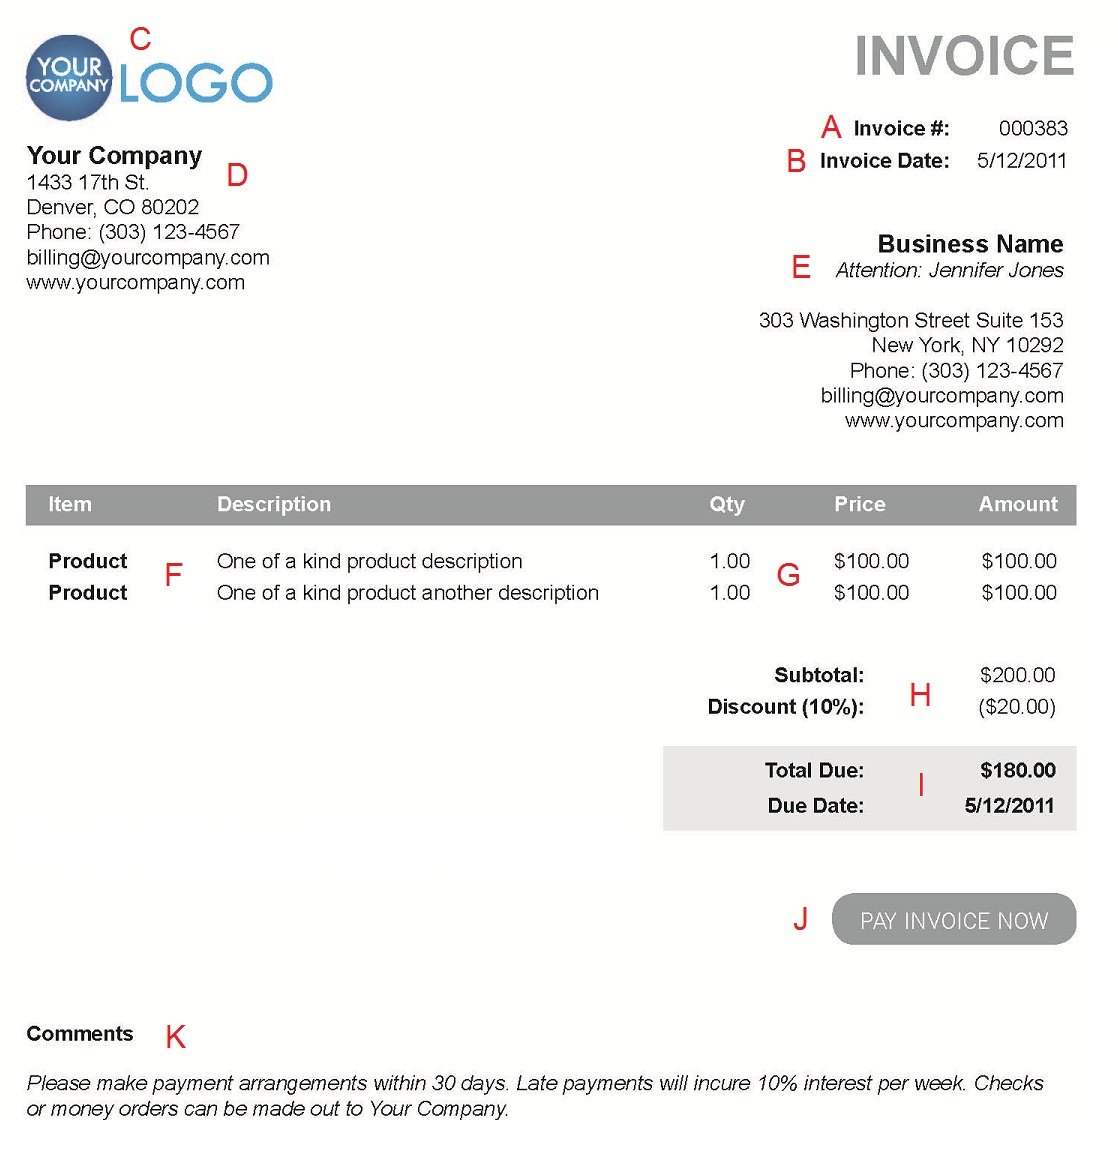 Opposenewapstandardsus  Splendid The  Different Sections Of An Electronic Payment Invoice With Fetching A  With Divine Printing Receipt Also Best Price On Neat Receipt Scanner In Addition Taxi Receipt Format And Receipt Printer Price As Well As Uk Receipt Template Additionally Toshiba Receipt Printer From Paysimplecom With Opposenewapstandardsus  Fetching The  Different Sections Of An Electronic Payment Invoice With Divine A  And Splendid Printing Receipt Also Best Price On Neat Receipt Scanner In Addition Taxi Receipt Format From Paysimplecom